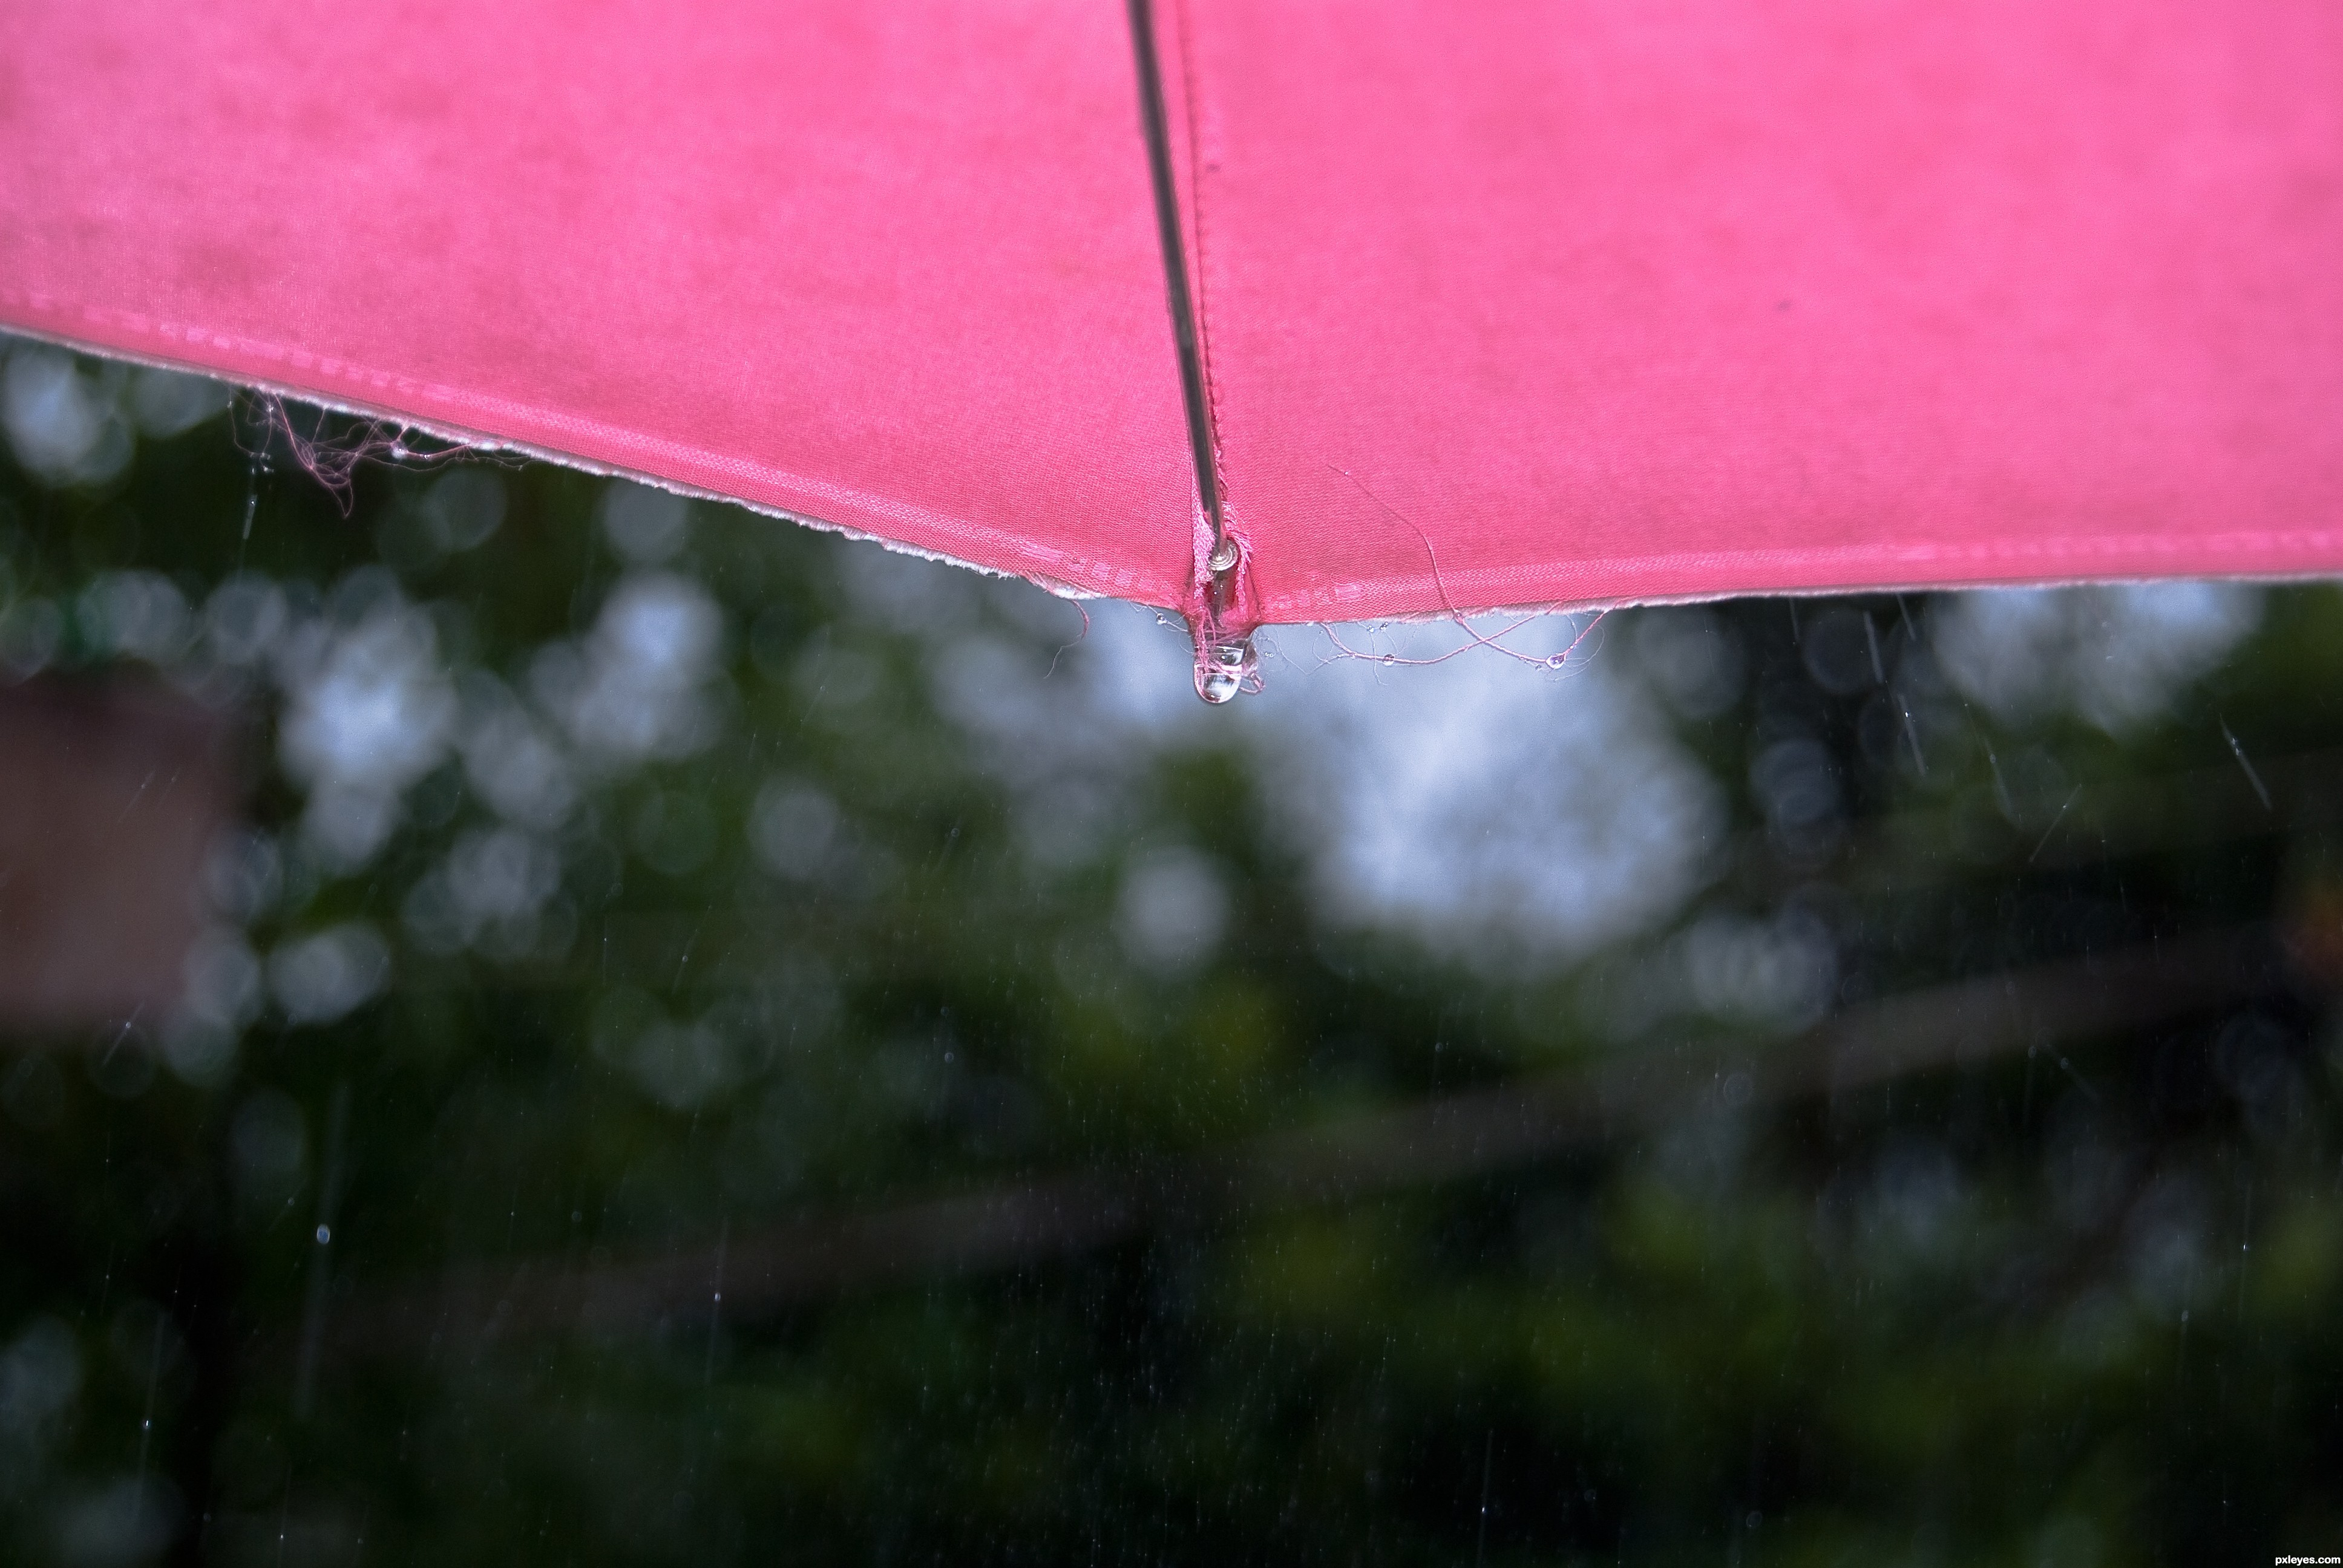 bf7b12553c8f9 pink umbrella picture, by roon for: in the rain photography contest ...